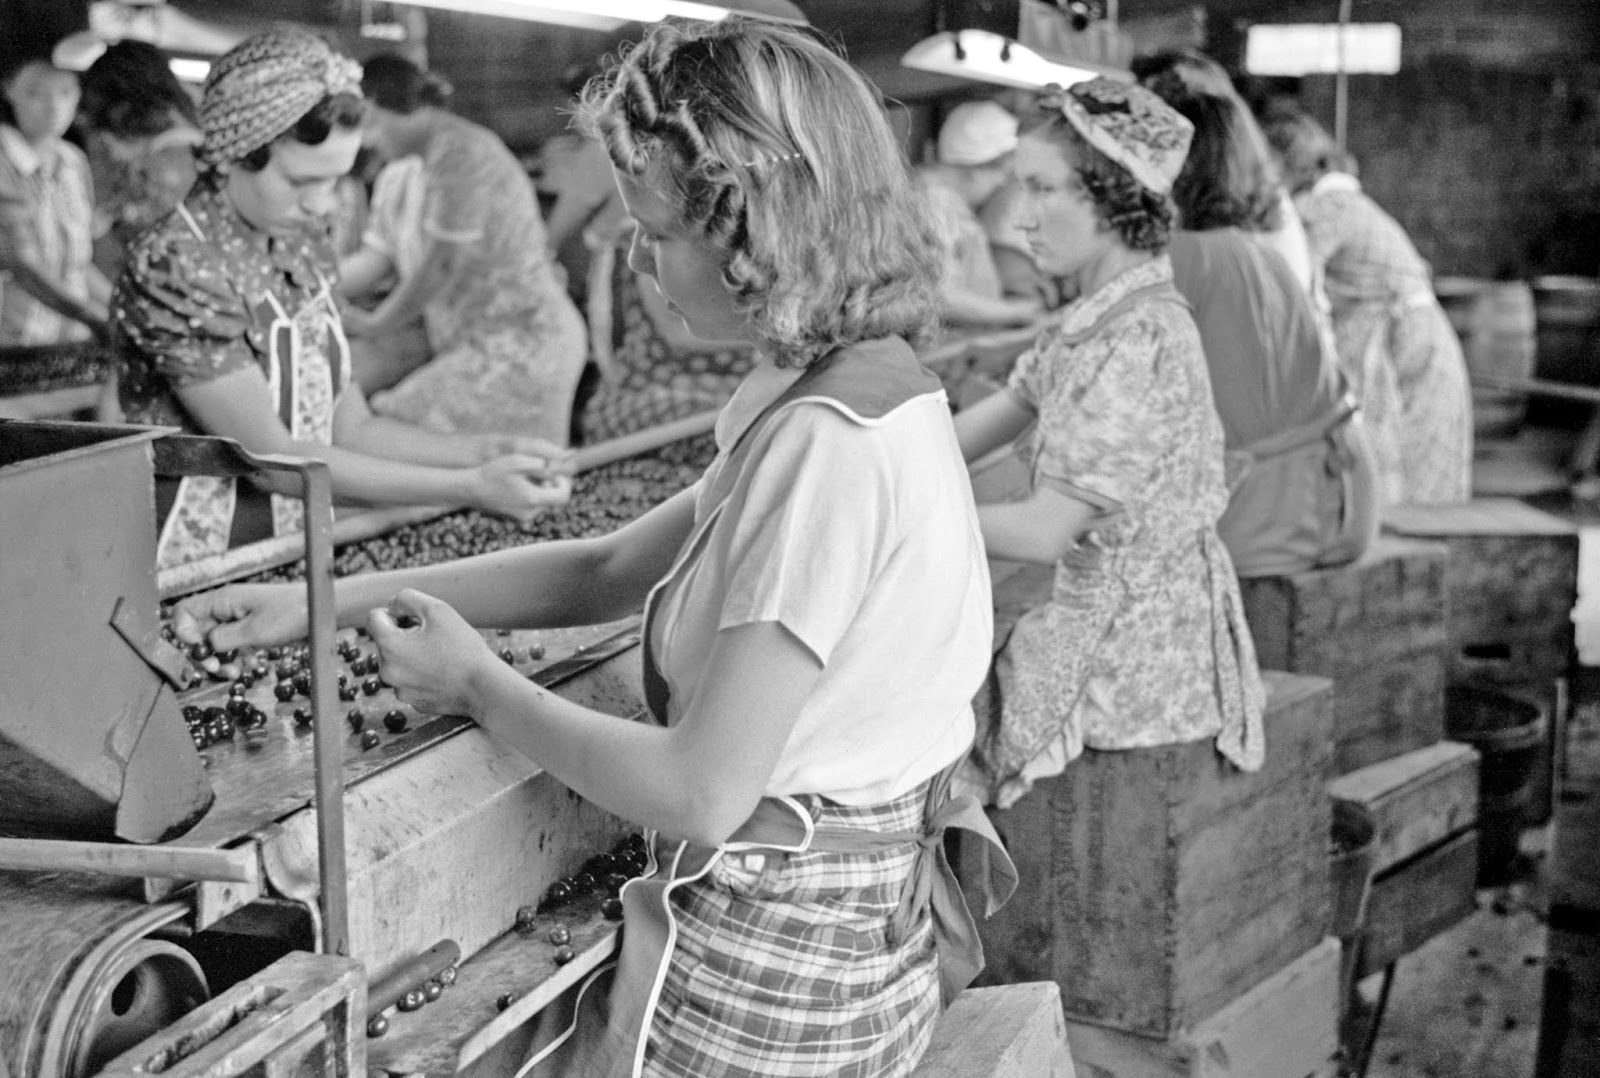 Migrant girls working in cherry canning plant, Berrien